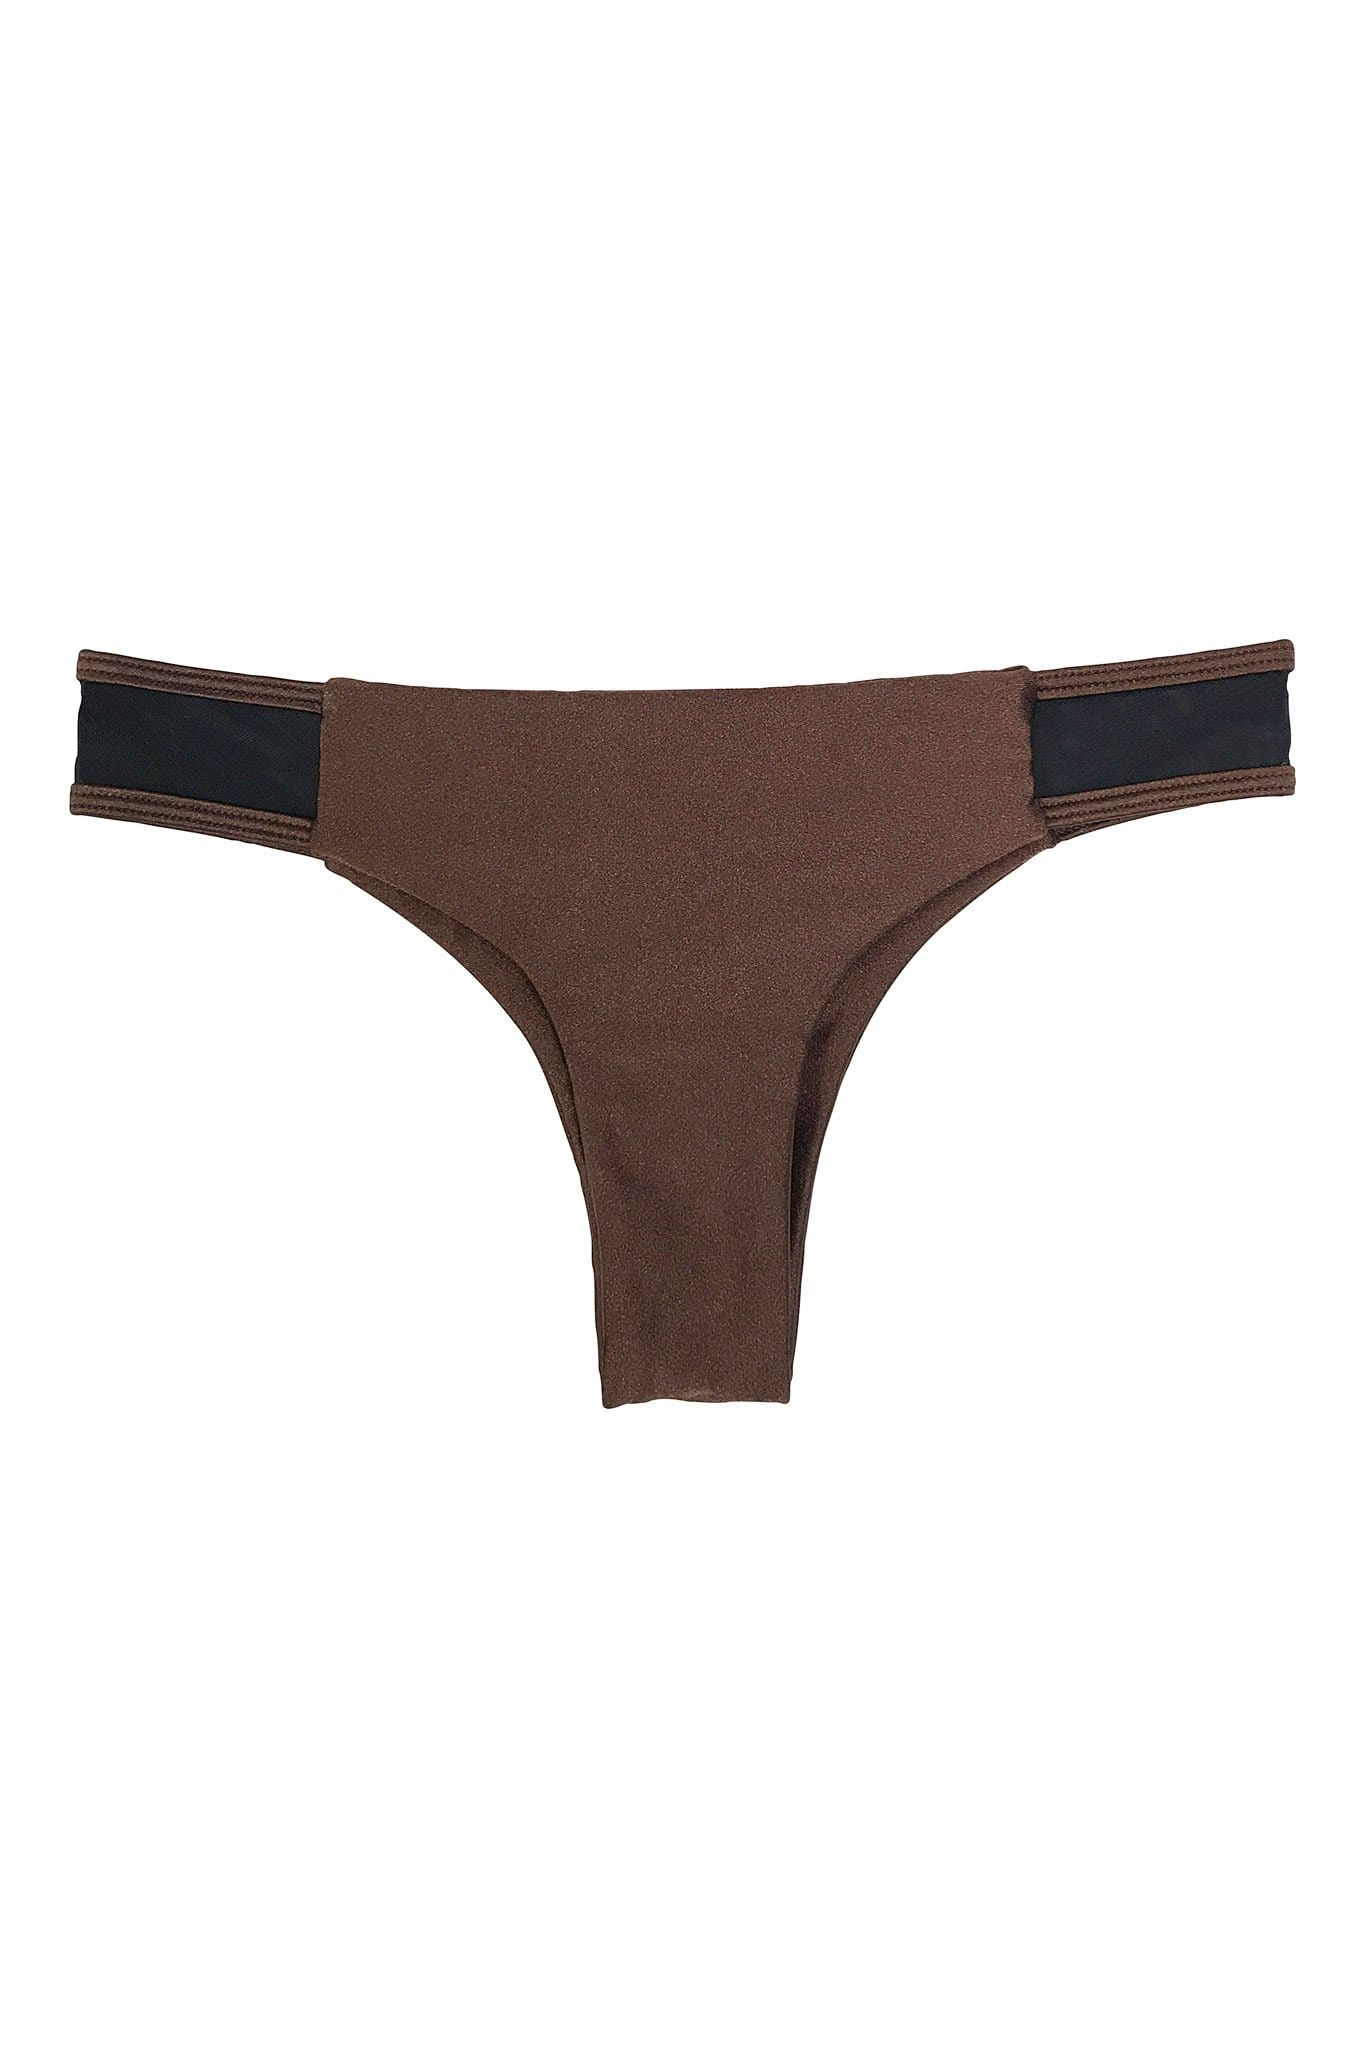 *SALE* Sola Bottom Chocolate